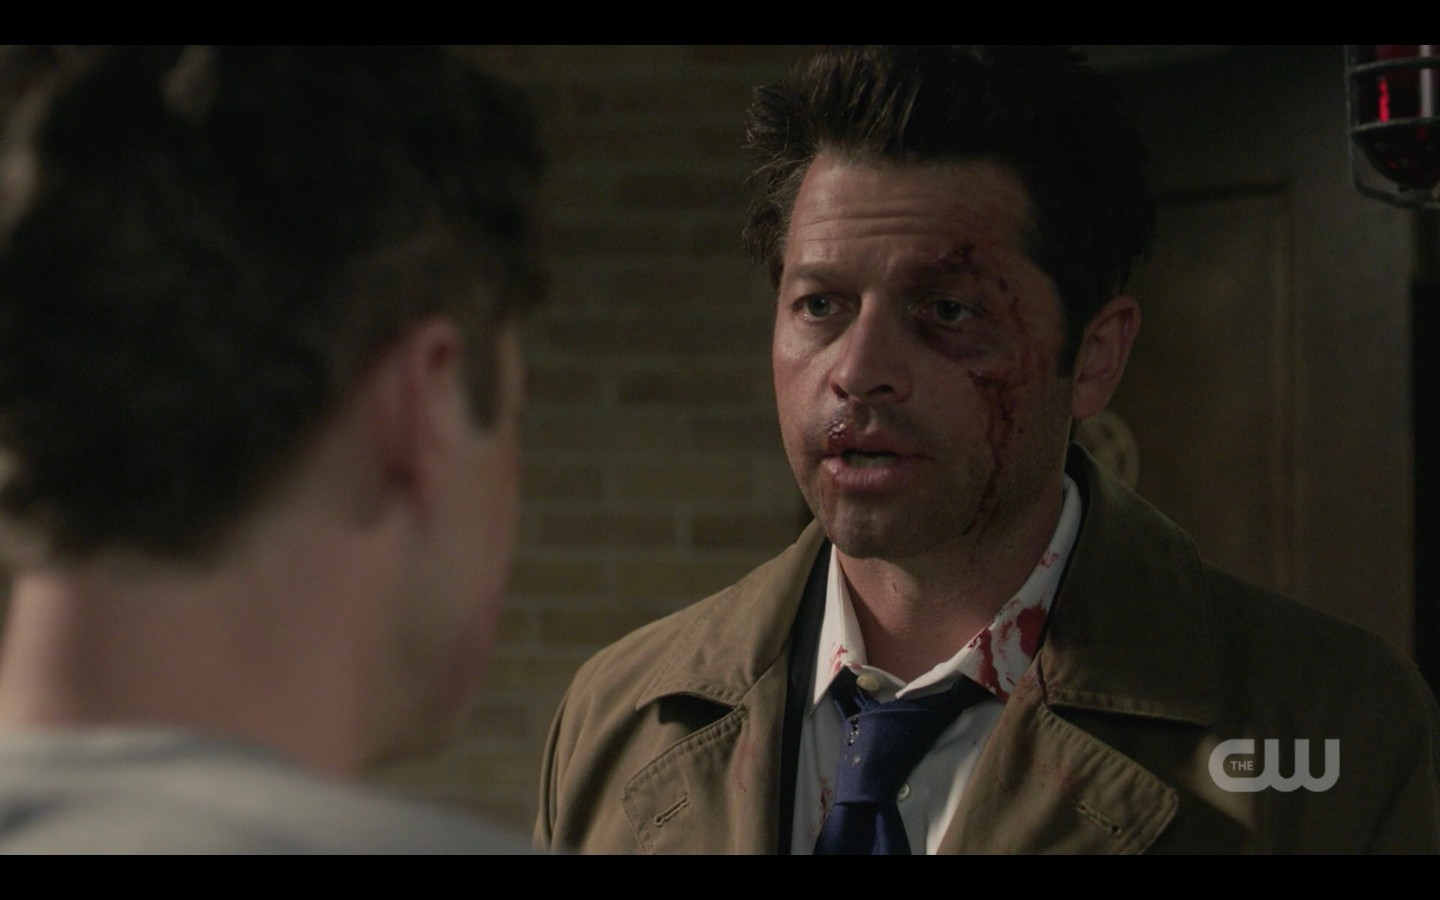 castiel telling supernatual jack hes got a family with winchesters